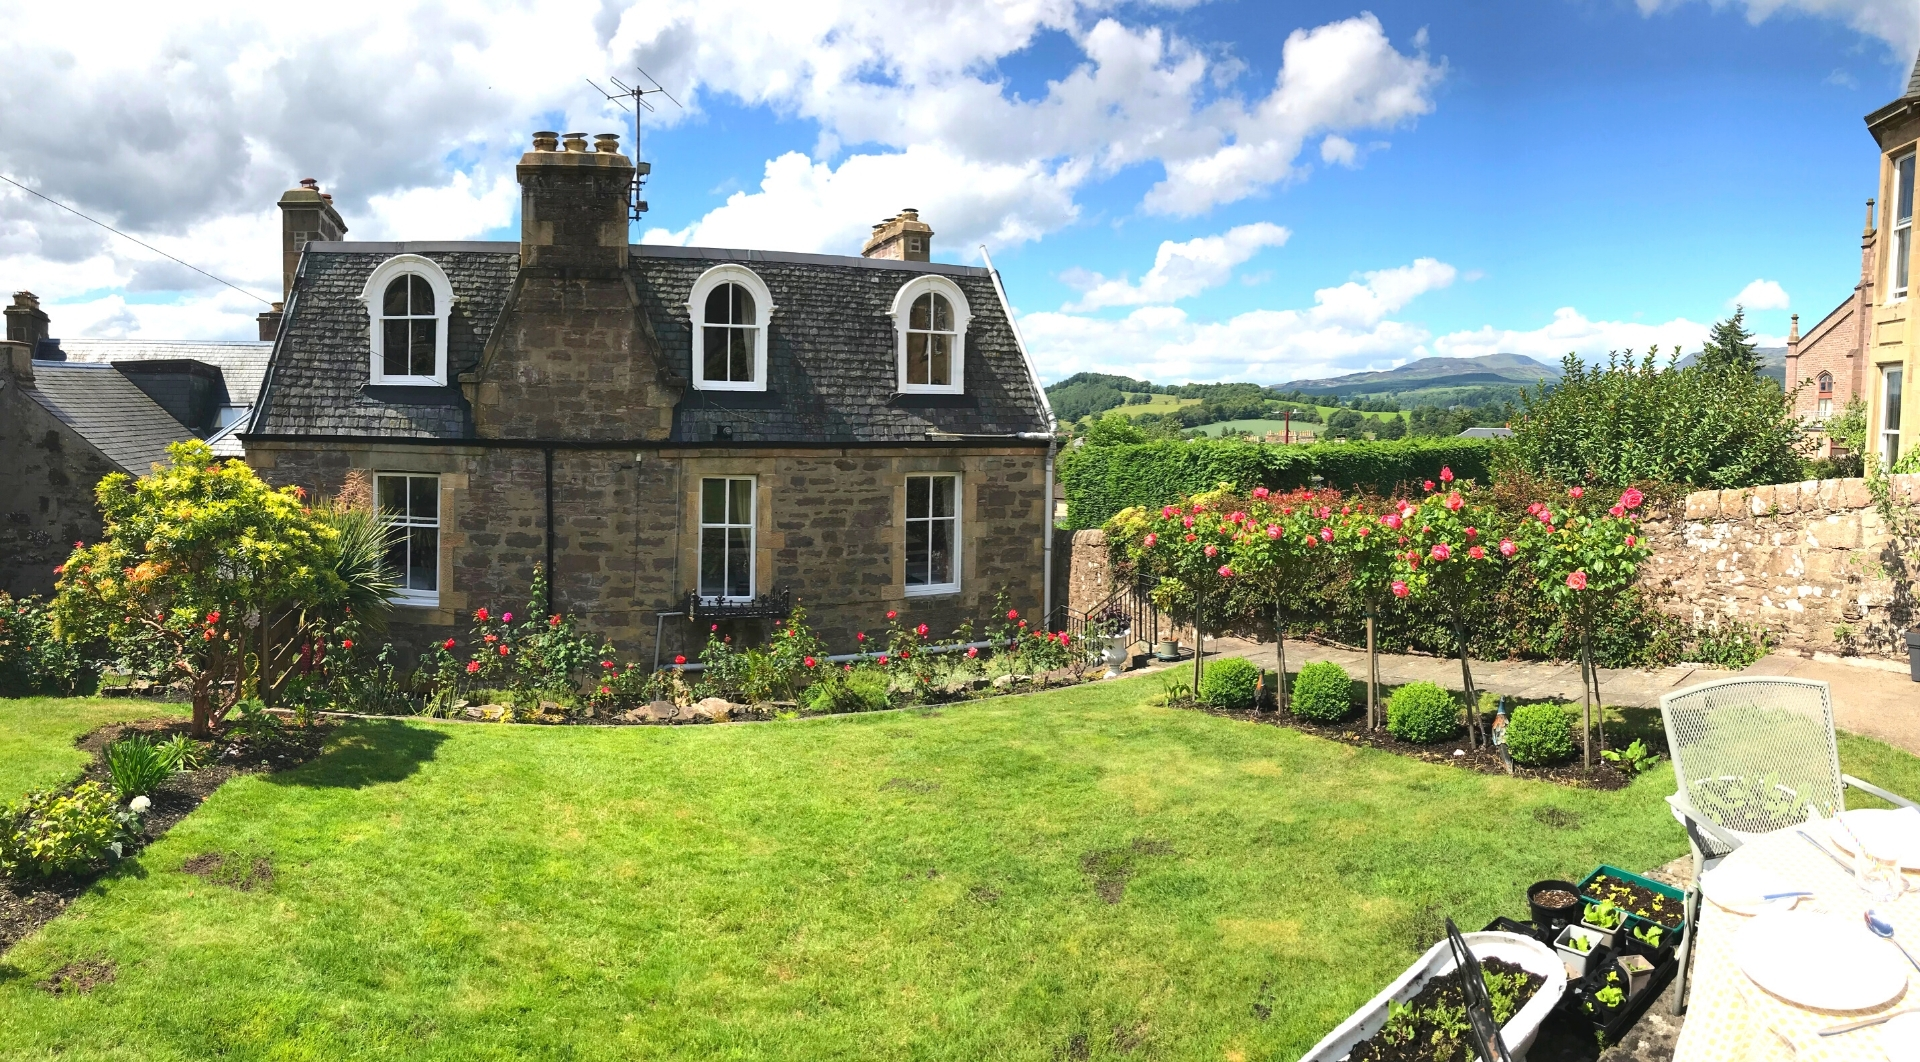 Leven House Bed and Breakfast Garden and Terrace, Crieff, Perthshire